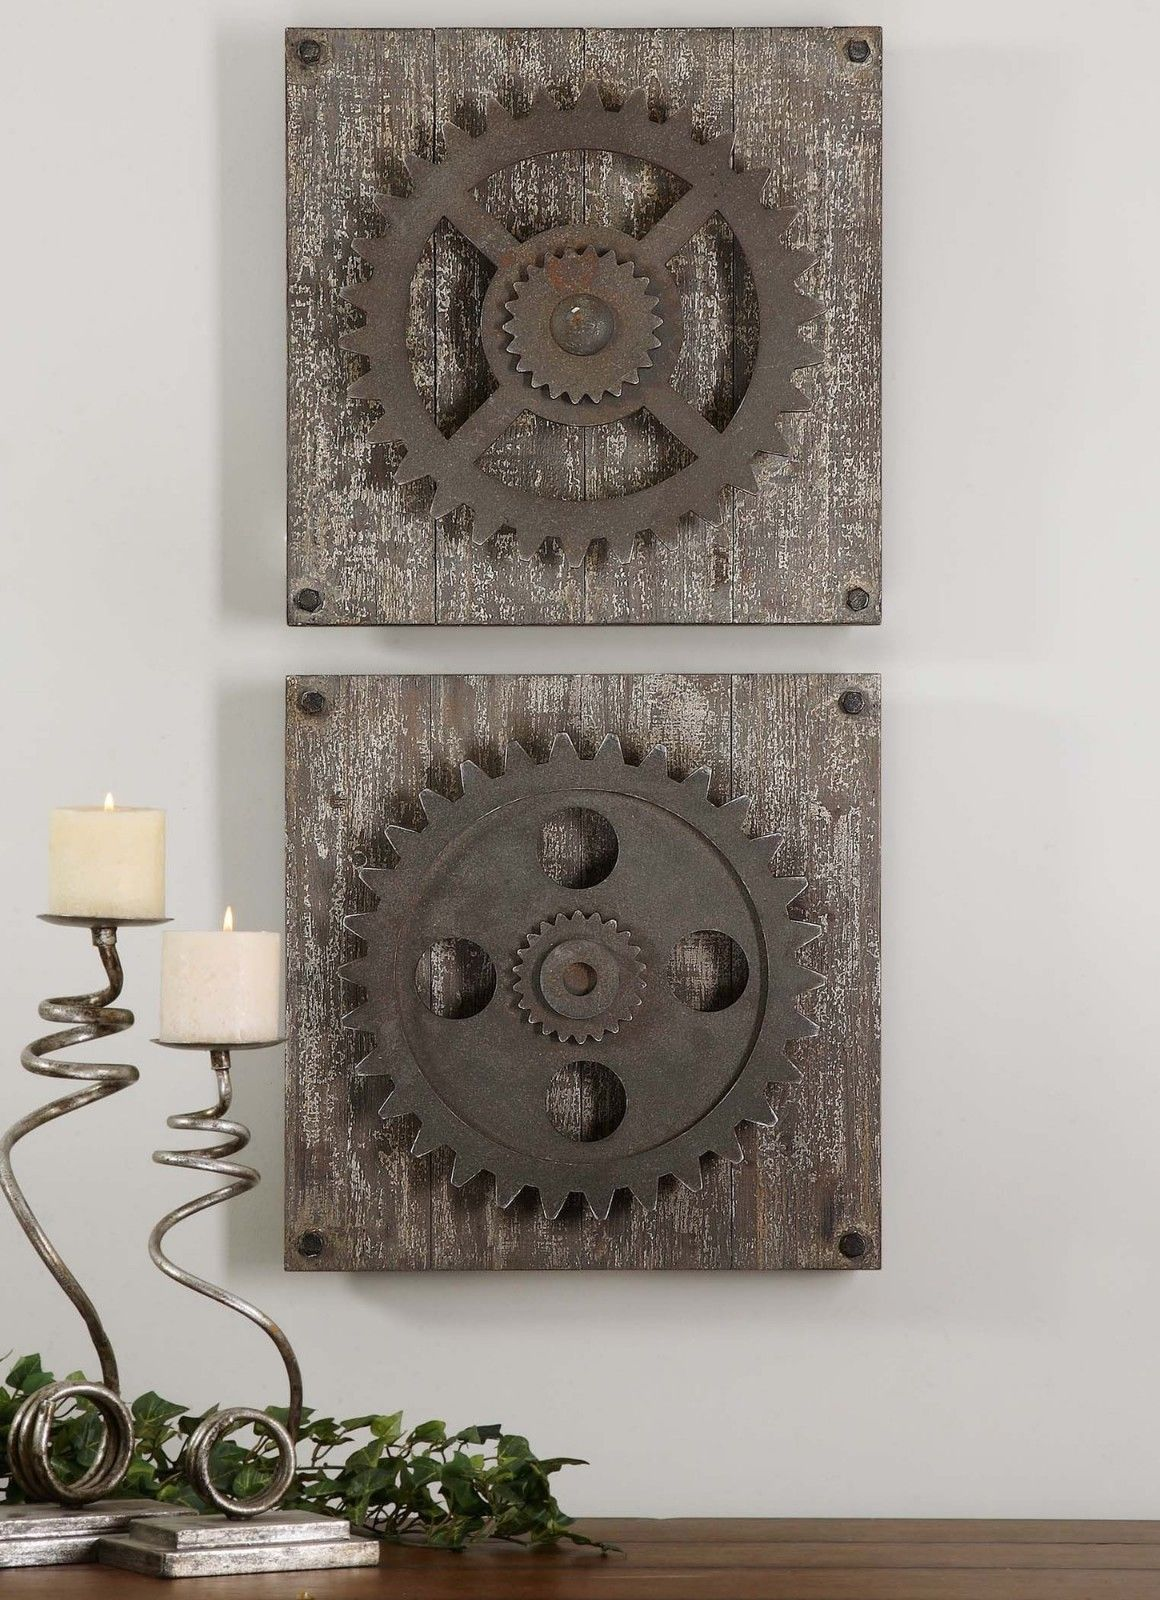 urban industrial loft steampunk decor rusty gears cogs 3d. Black Bedroom Furniture Sets. Home Design Ideas